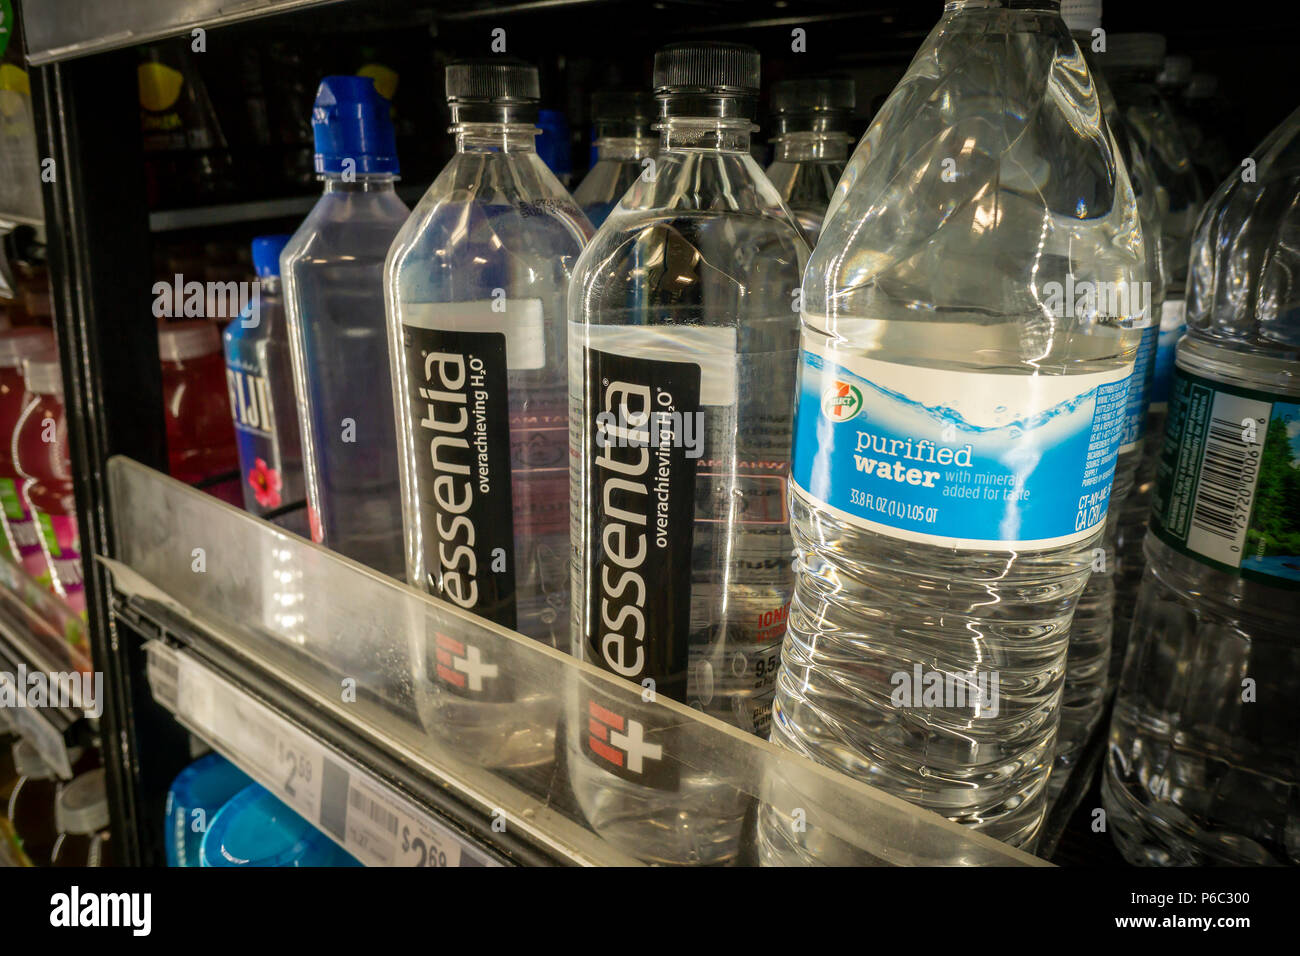 Bottles of Essentia and other waters in a cooler in a convenience store in New York on Thursday, June 14, 2018. Essentia, one of players in the functional water space, has hired Credit Suisse to run an auction of the company hoping to attract a larger beverage brand such as PepsiCo or Nestle. Essentia claims superior hydration due to a proprietary method of ionizing the water. (© Richard B. Levine) - Stock Image